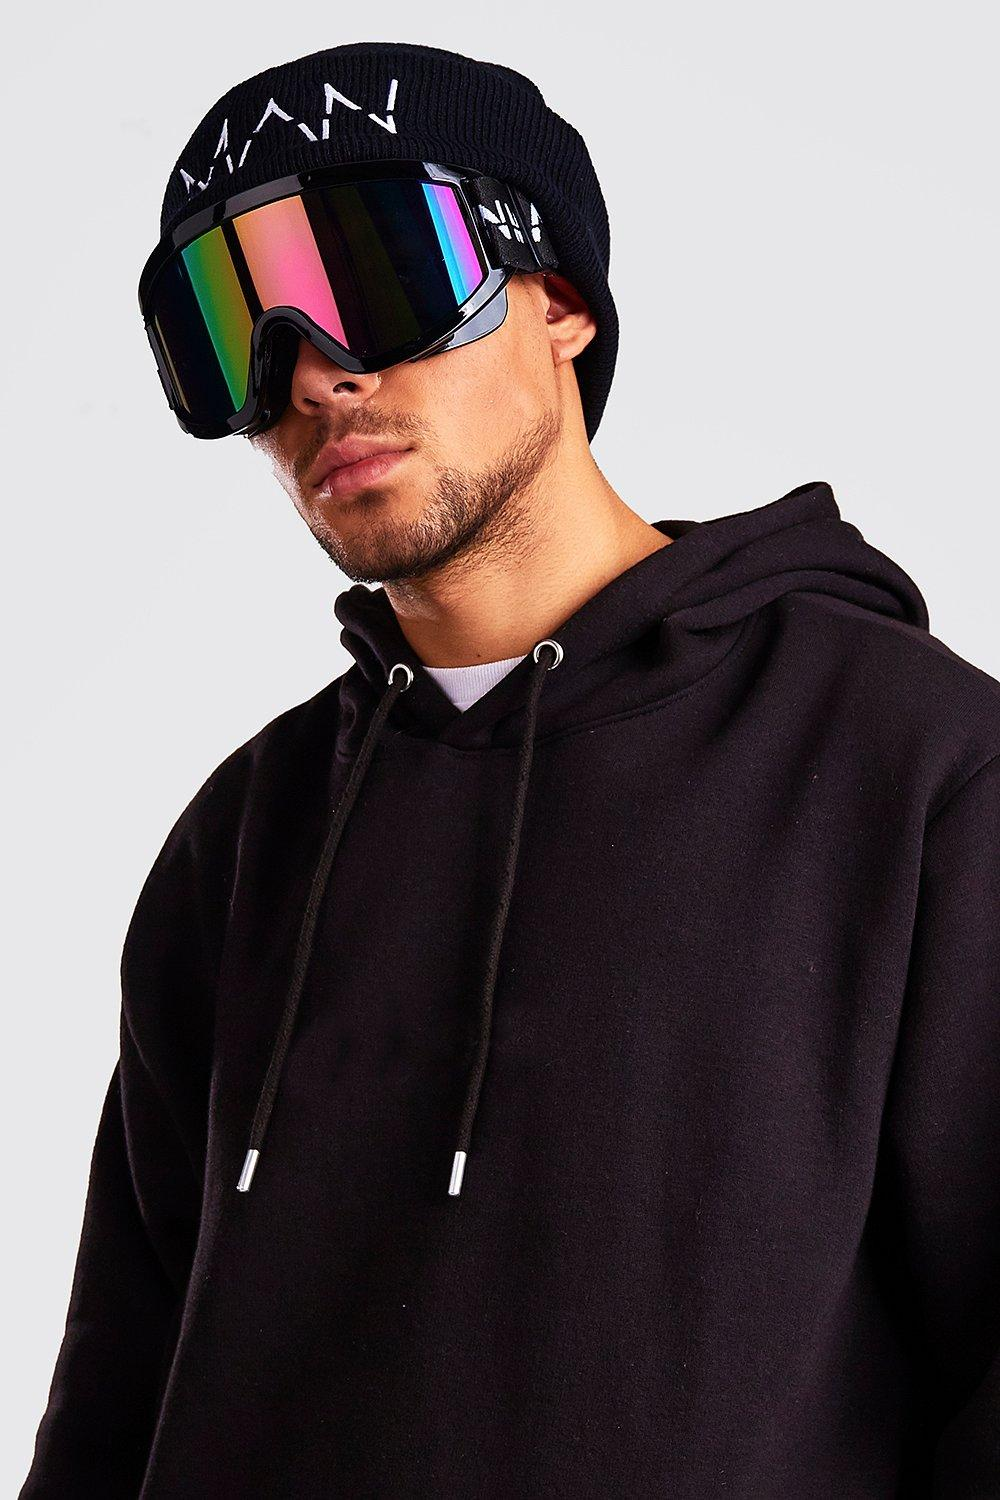 Ski wear trends man with extra large ski googles black hoodie and hat